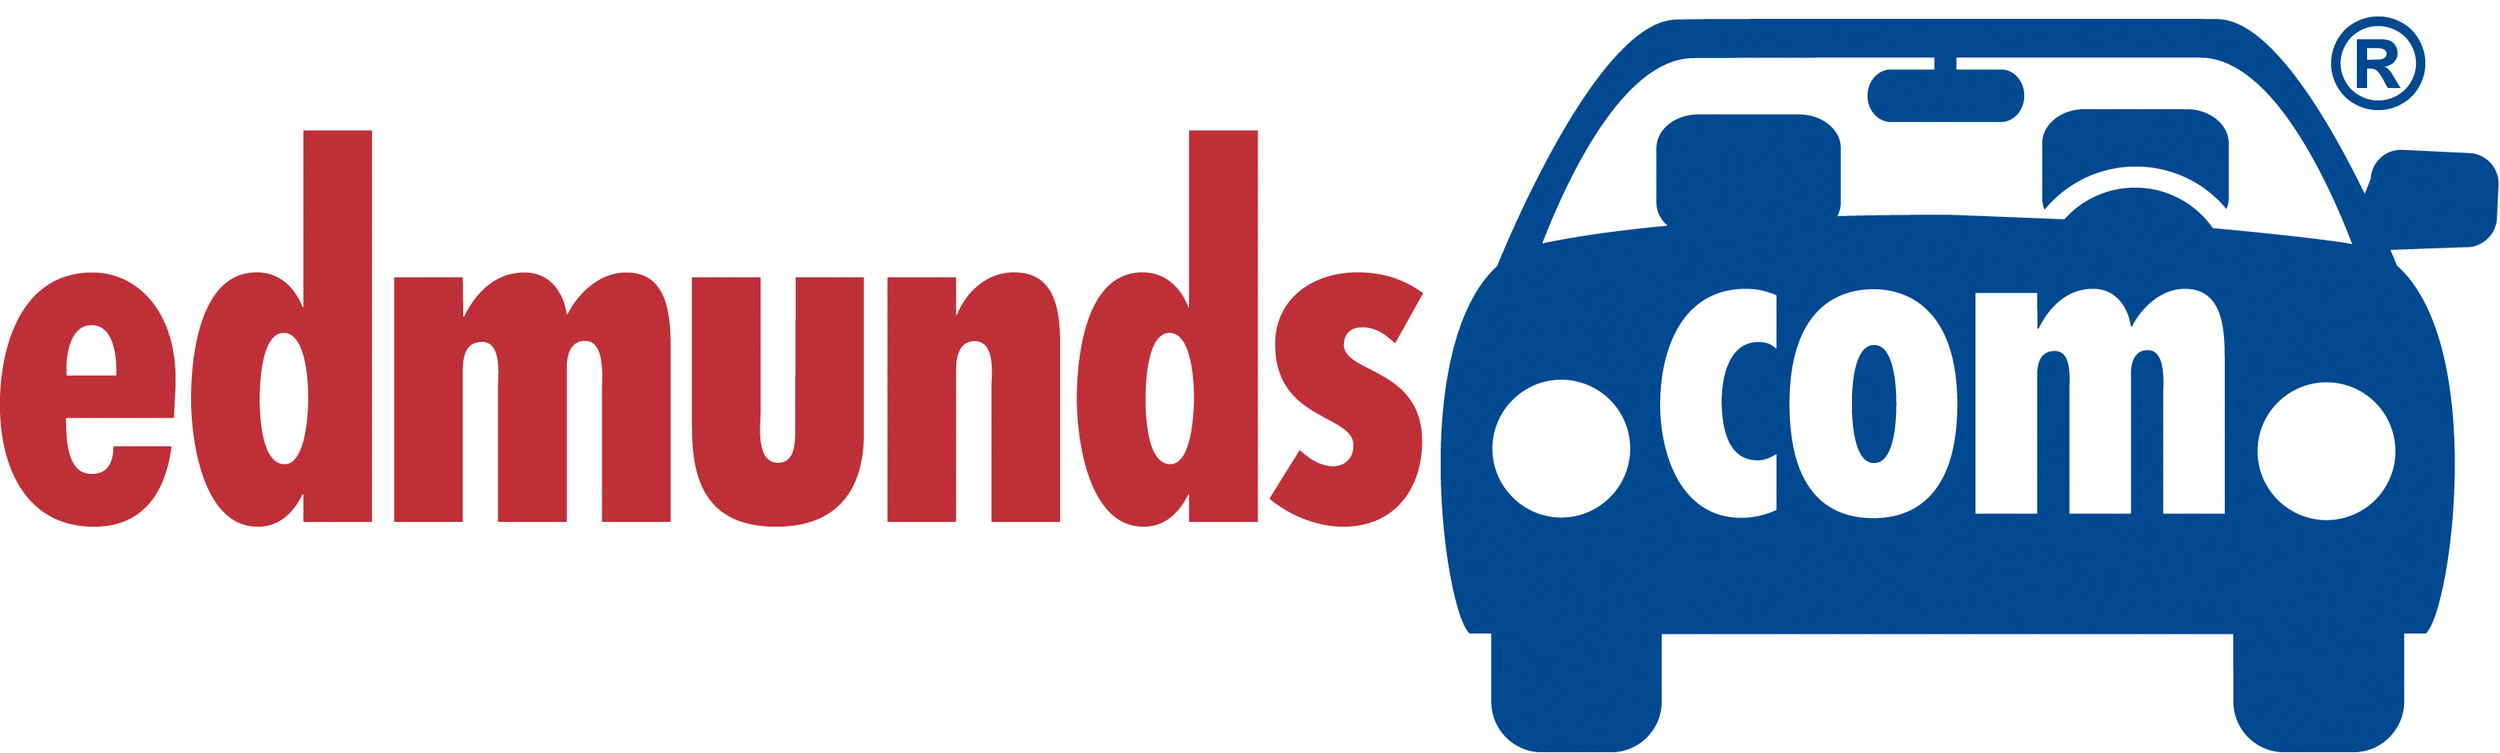 edmunds_logo_official_hi_res.jpeg